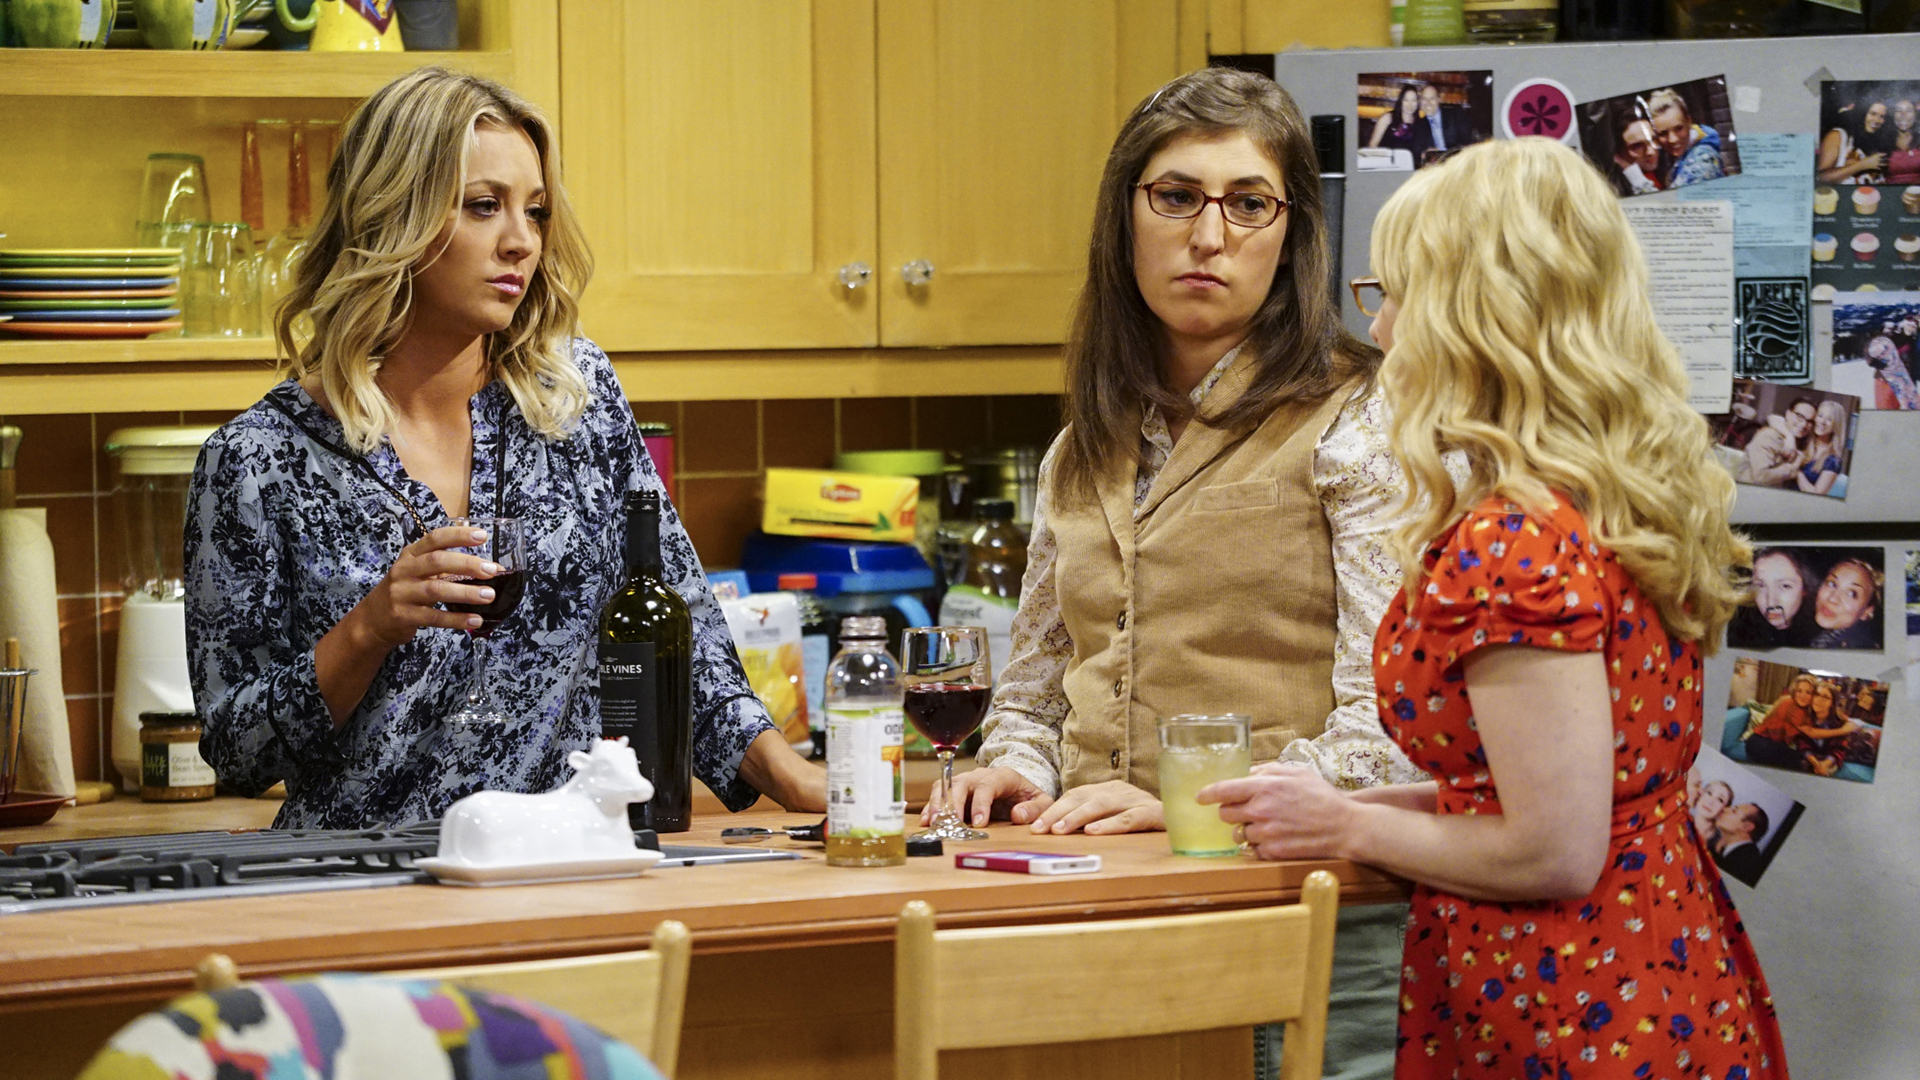 Bernadette discusses her work woes with Penny and Amy.